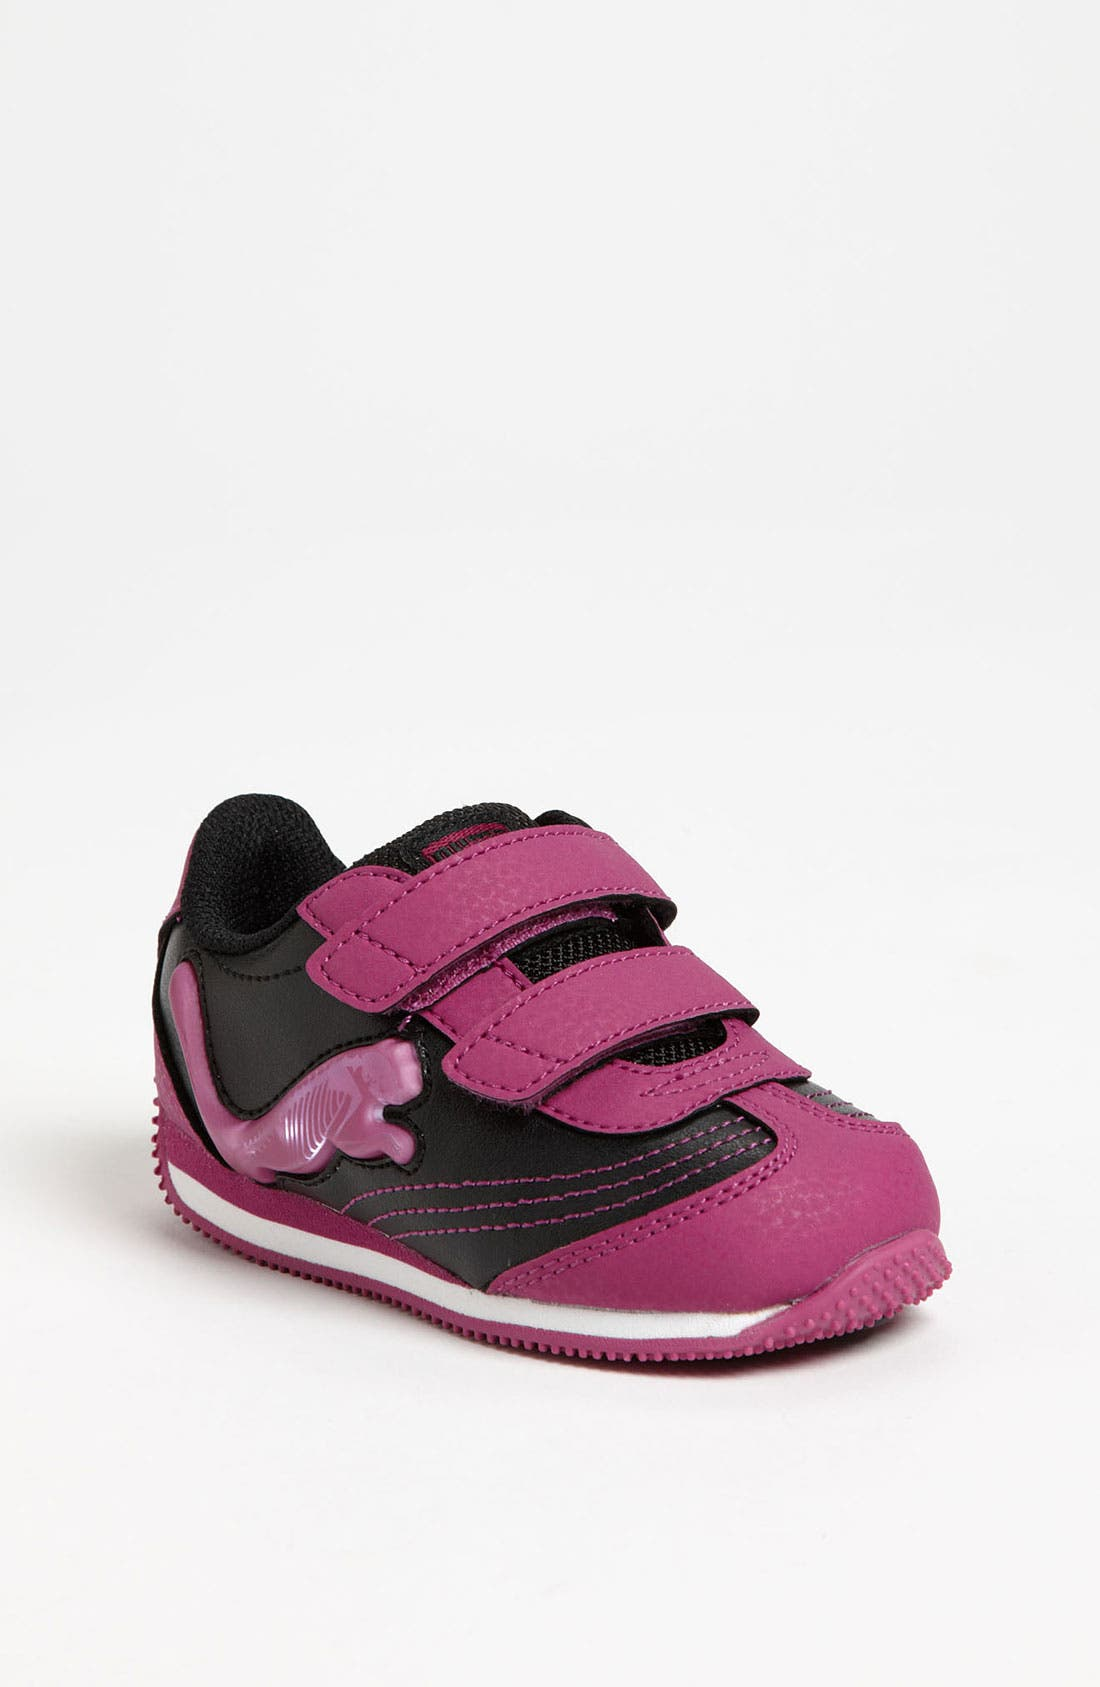 Main Image - PUMA 'Speeder Illuminescent' Sneaker (Baby, Walker & Toddler)